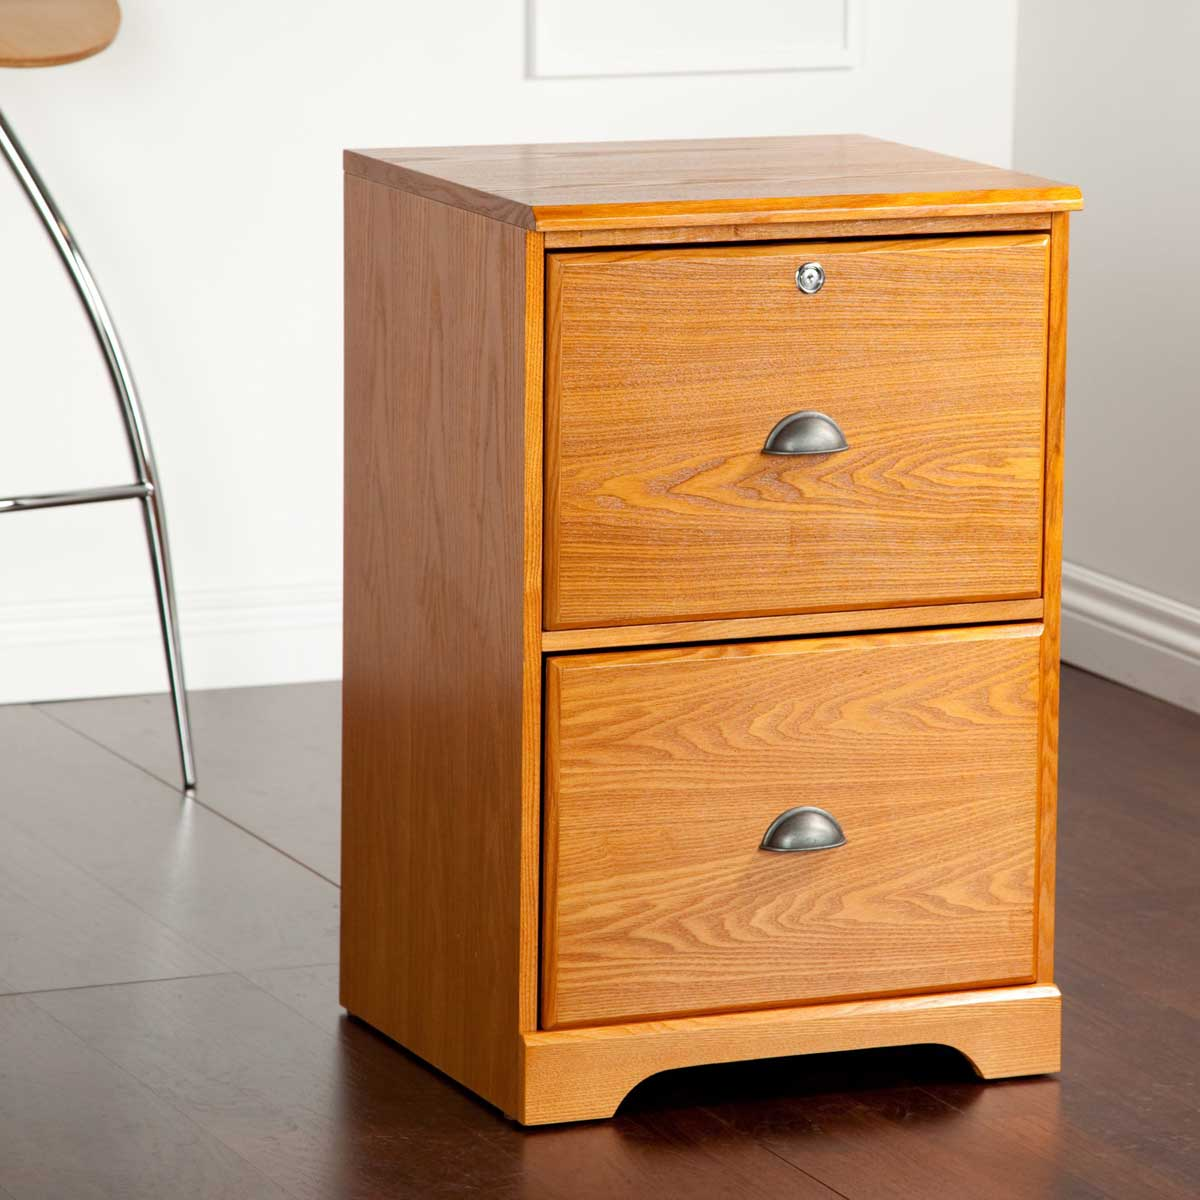 8 Tricks To Organise Your Filing Cabinet